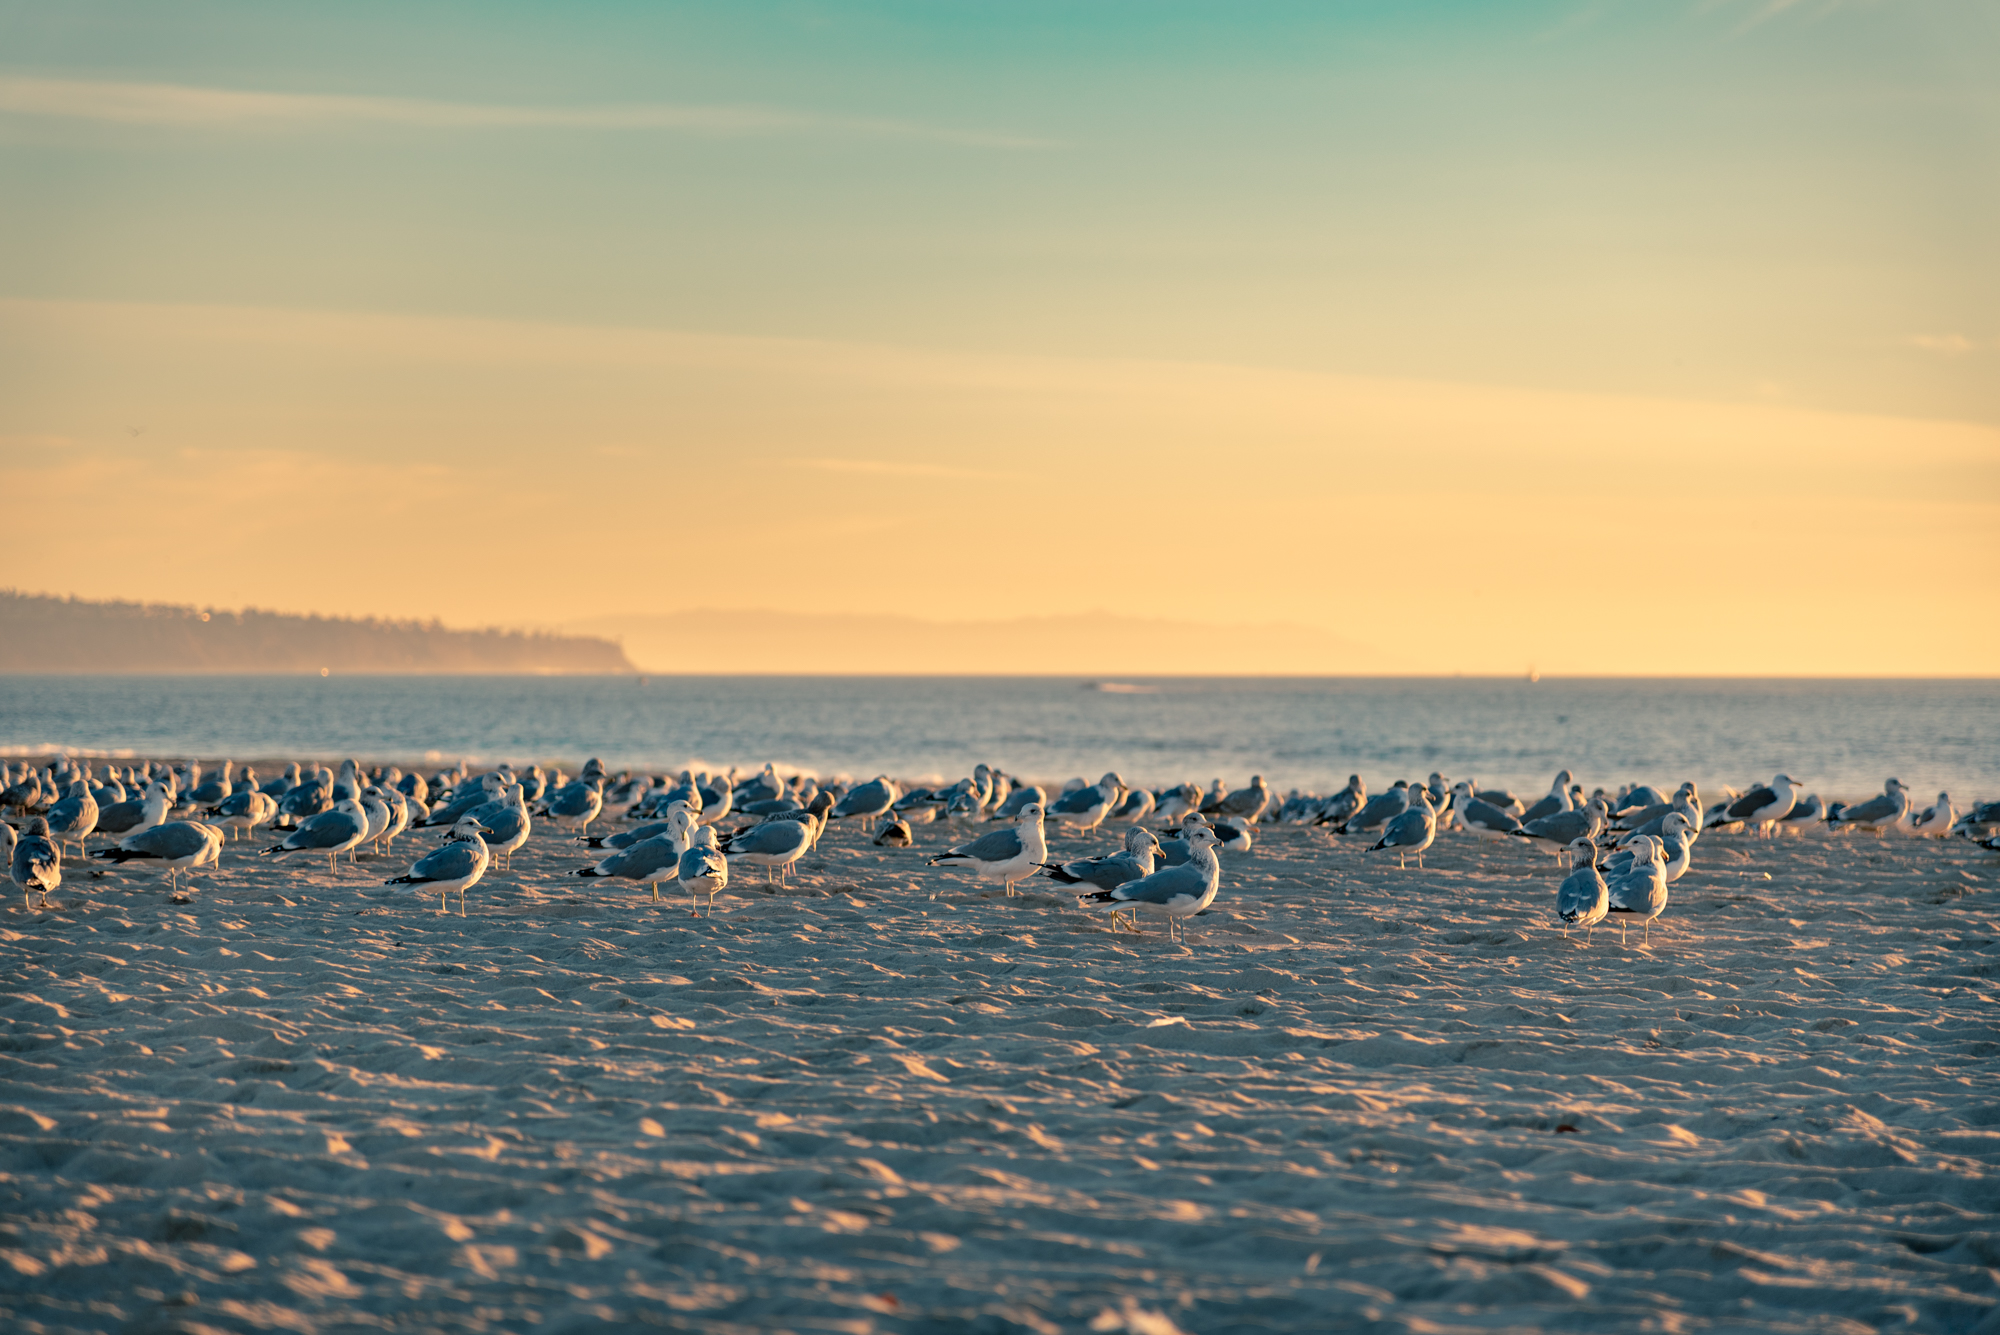 Seagulls resting on sand